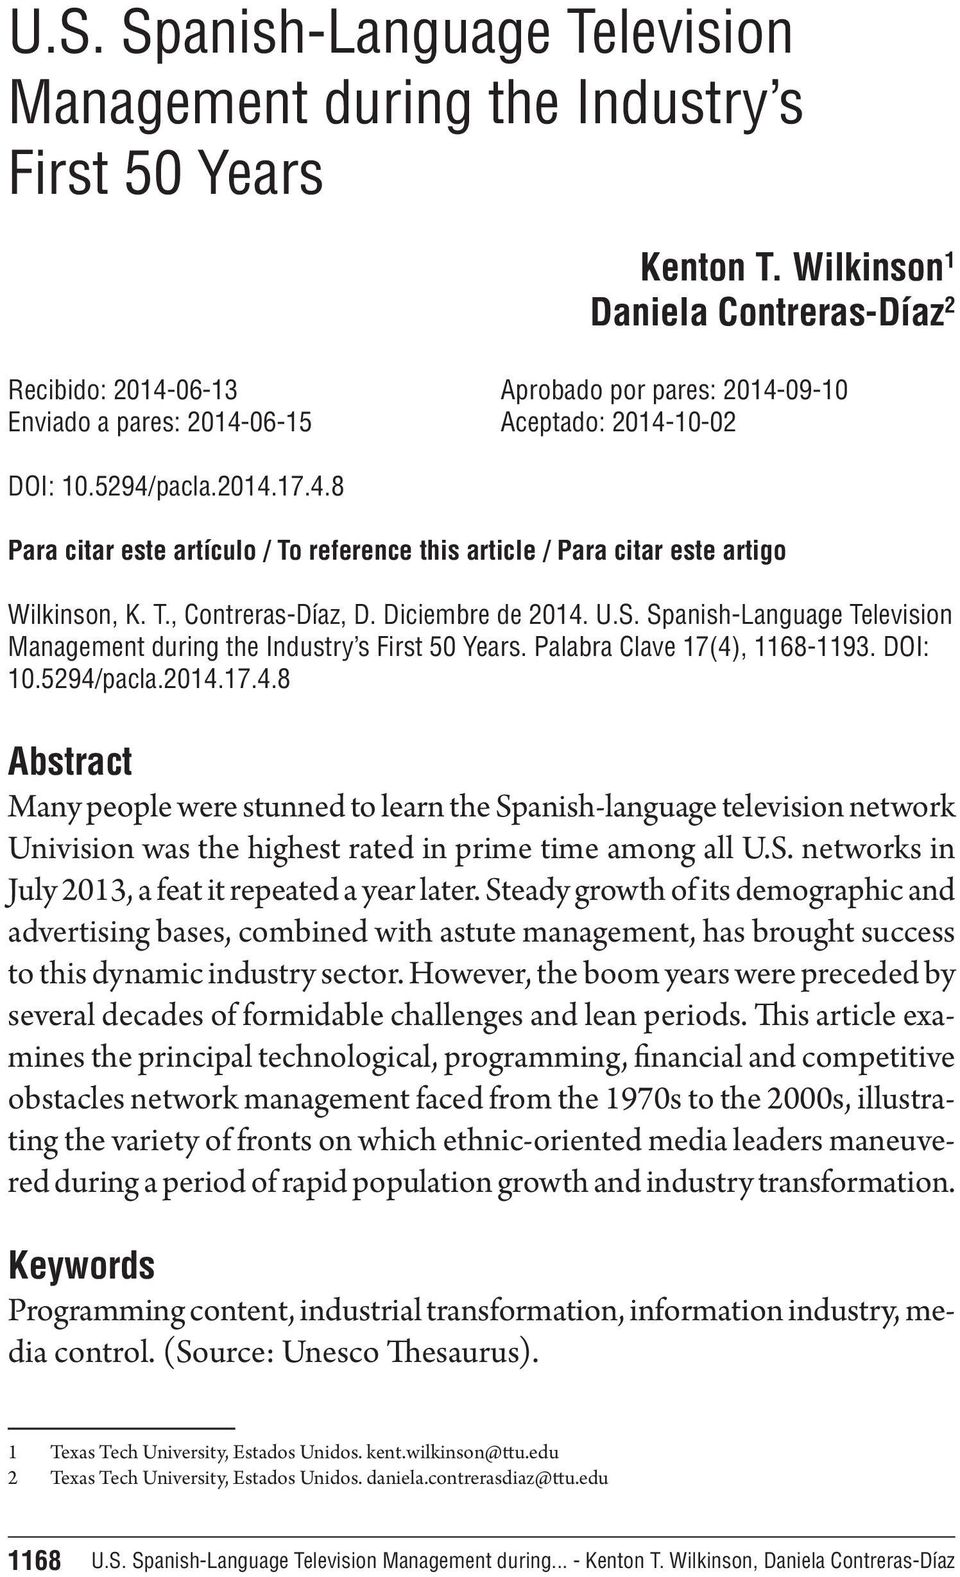 T., Contreras-Díaz, D. Diciembre de 2014. U.S. Spanish-Language Television Management during the Industry s First 50 Years. Palabra Clave 17(4), 1168-1193. DOI: 10.5294/pacla.2014.17.4.8 Abstract Many people were stunned to learn the Spanish-language television network Univision was the highest rated in prime time among all U.